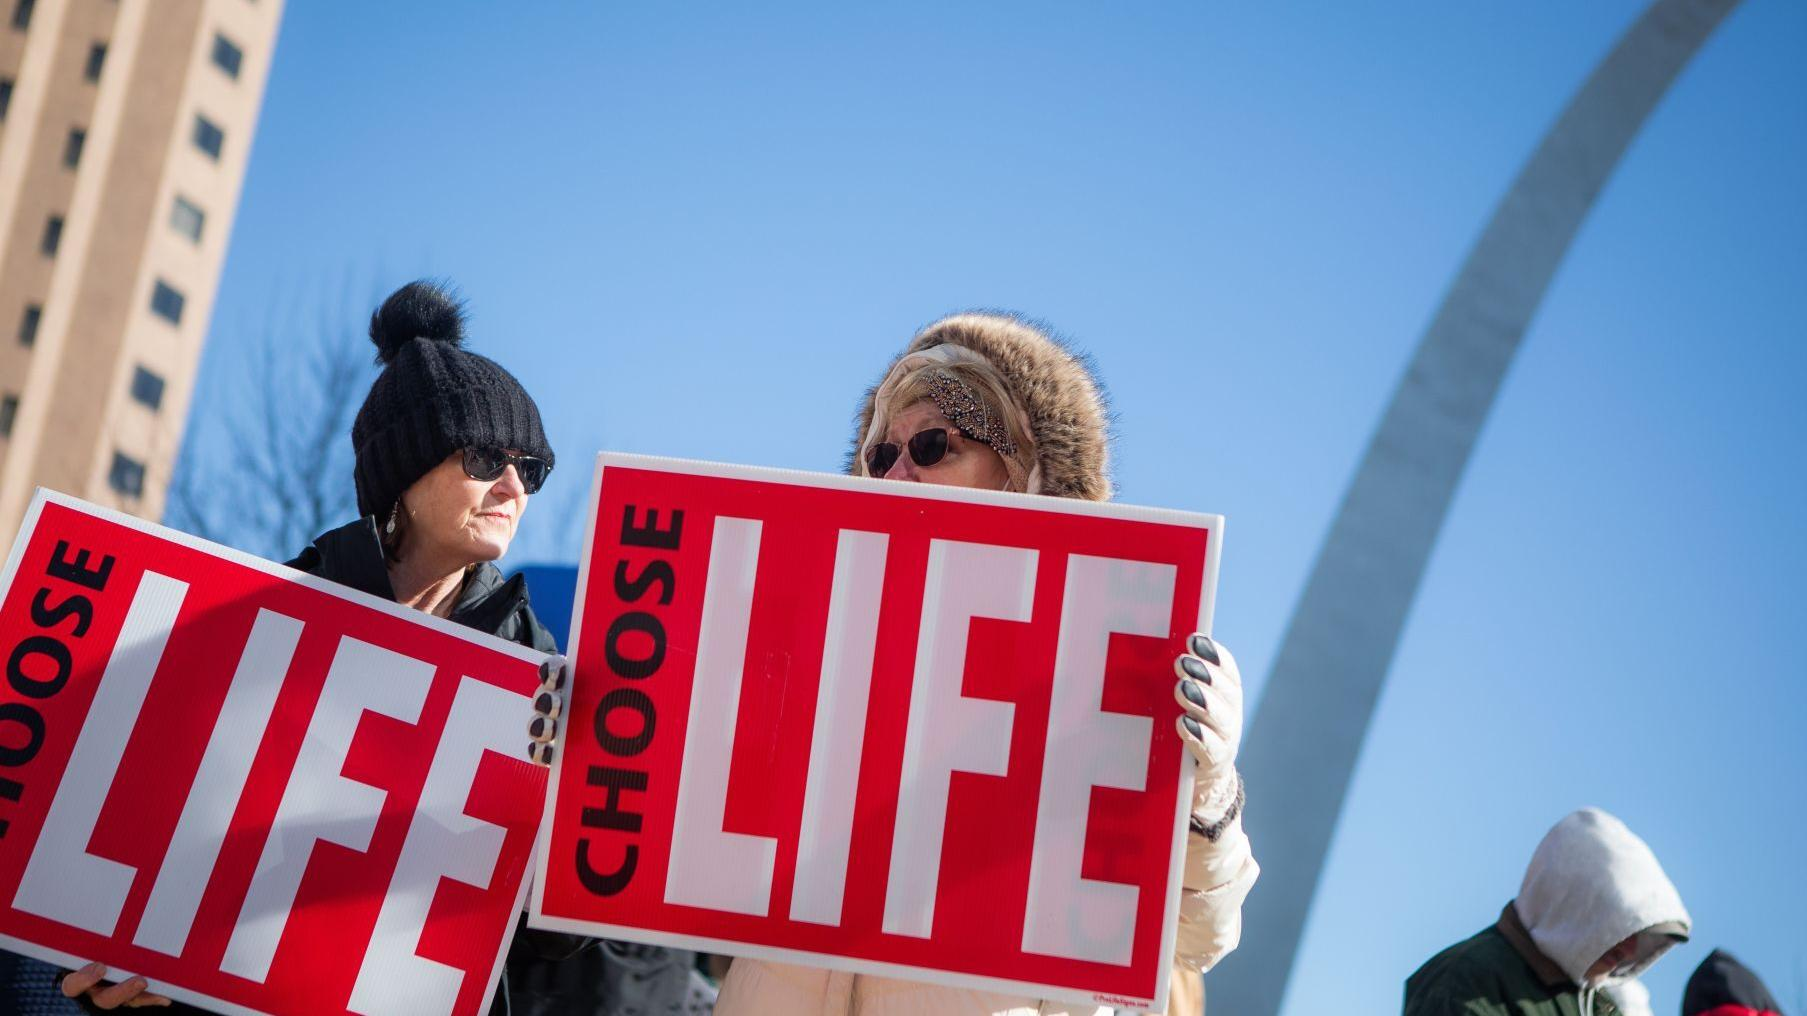 Photos: Anti-abortion activists rally at Old Courthouse